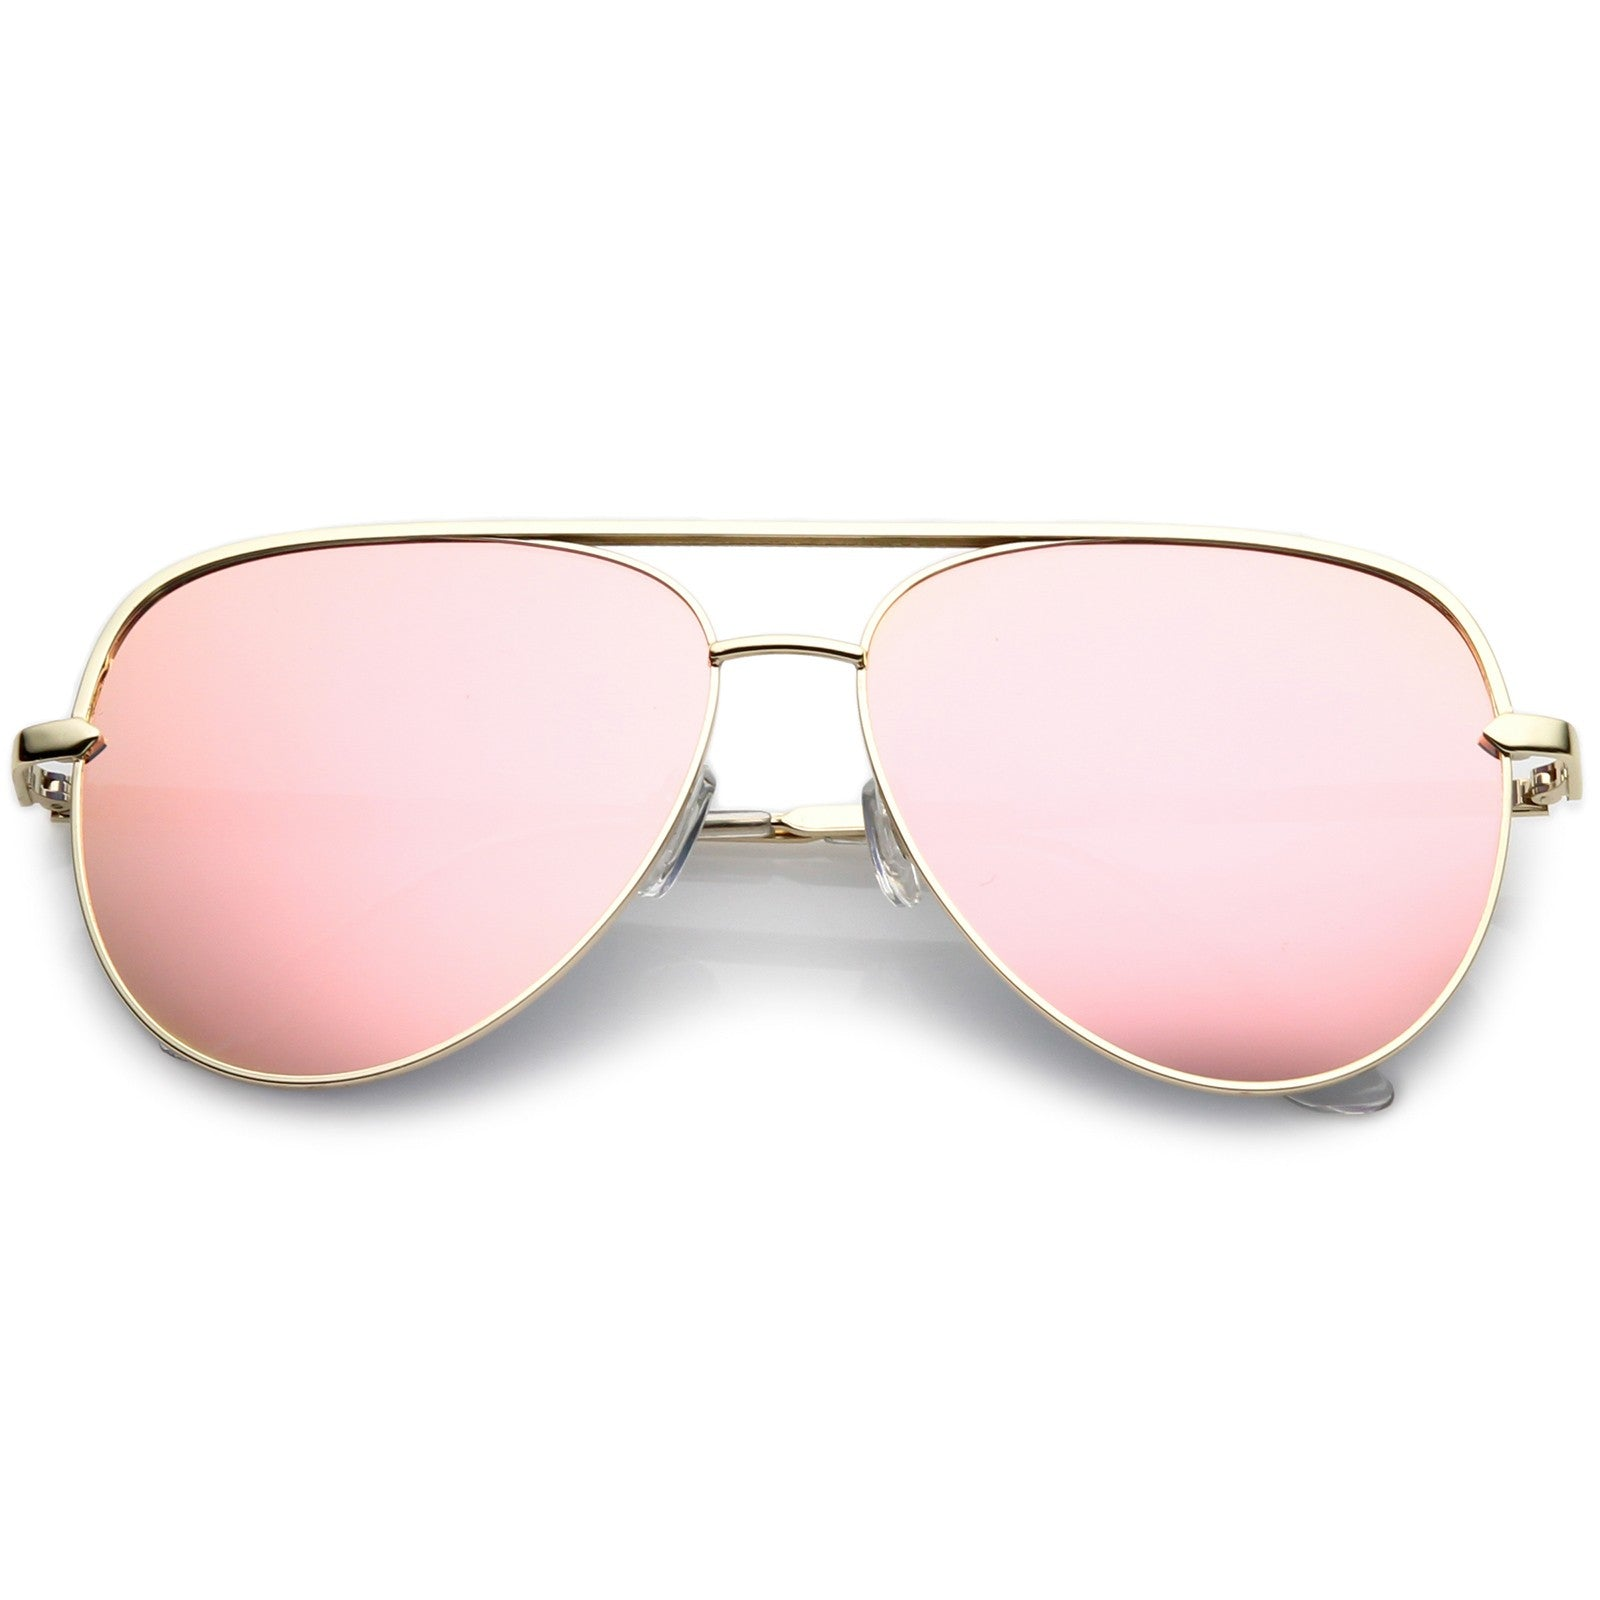 5748eb81d466 Premium Oversize Metal Aviator Sunglasses With Colored Mirror Lens And  Crossbar 60mm - Glo Suite